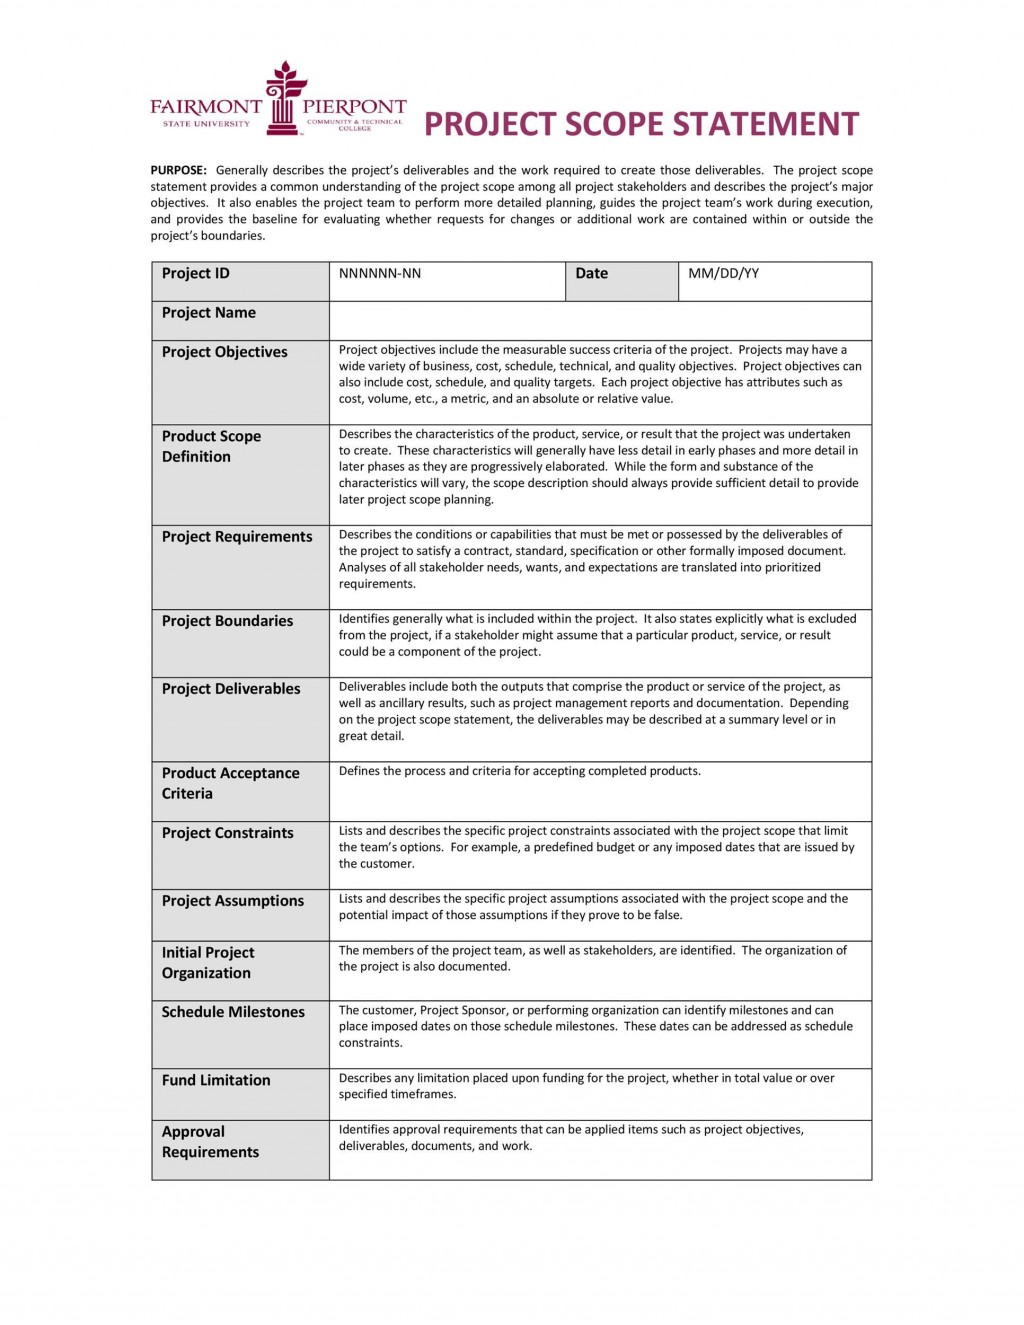 009 Stunning Project Scope Management Plan Template Free Photo Large